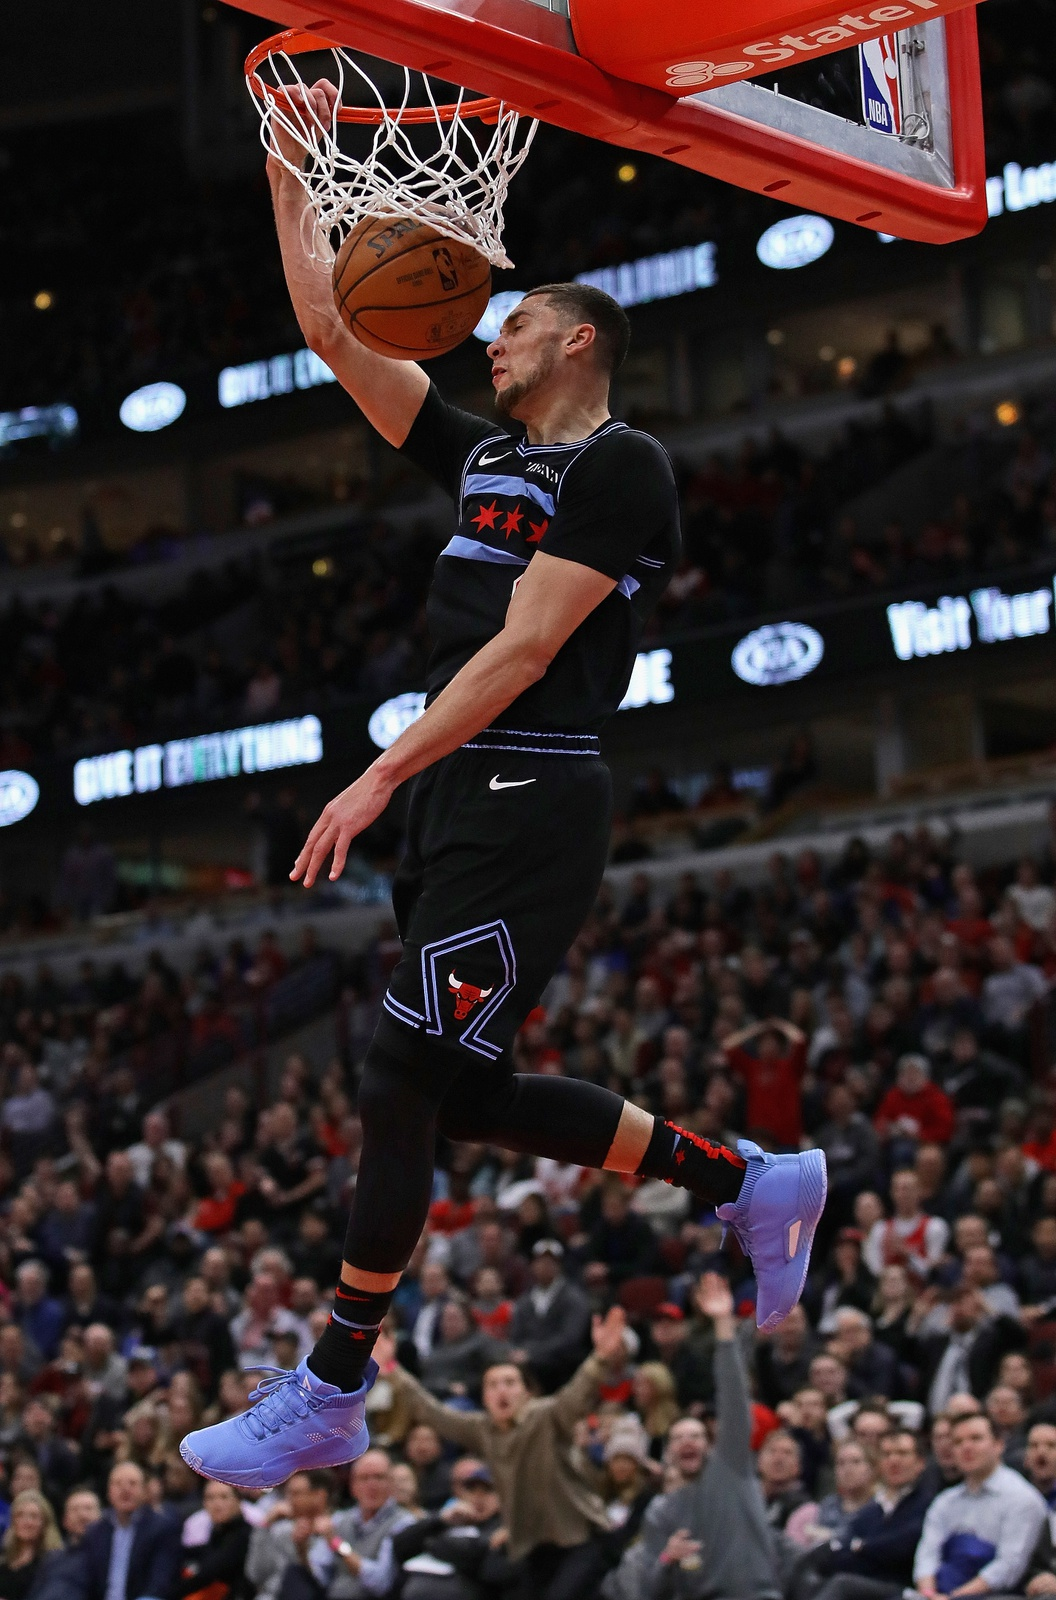 Zach LaVine #8 of the Chicago Bulls dunks against the Philadelphia 76ers on his way to a game-high 39 points at the United Center on March 06, 2019 in Chicago, Illinois. The Bulls defeated the 76ers 108-107.